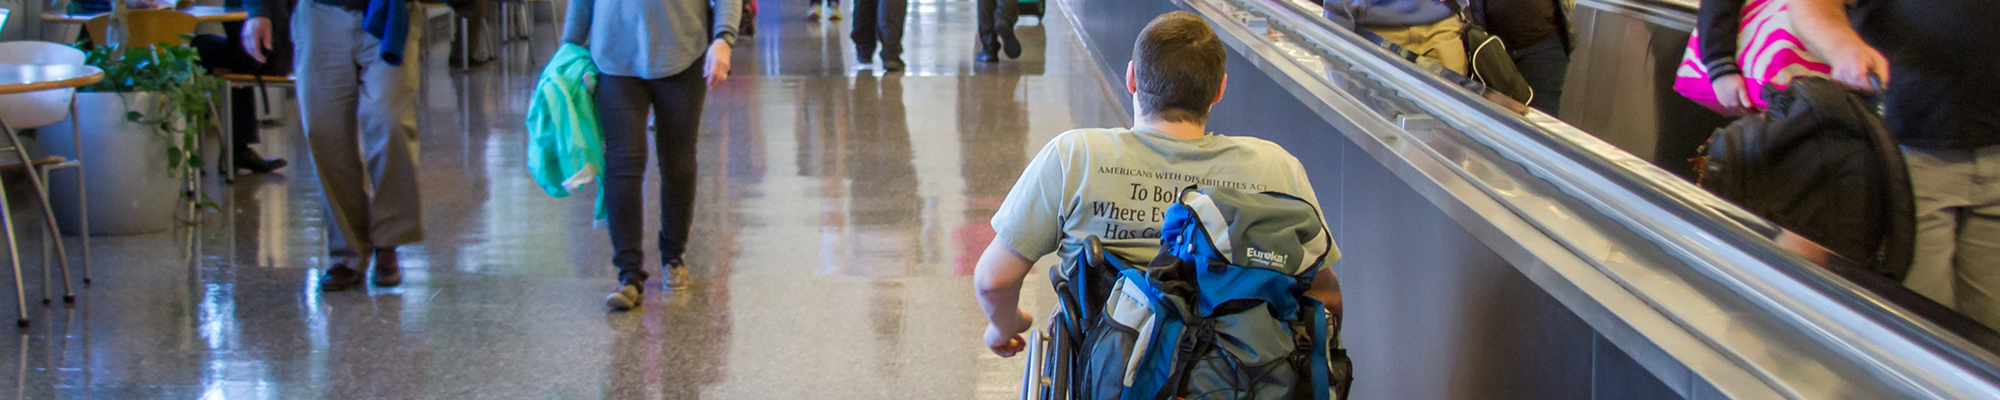 Image of a man in a wheelchair navigating through an airport terminal.